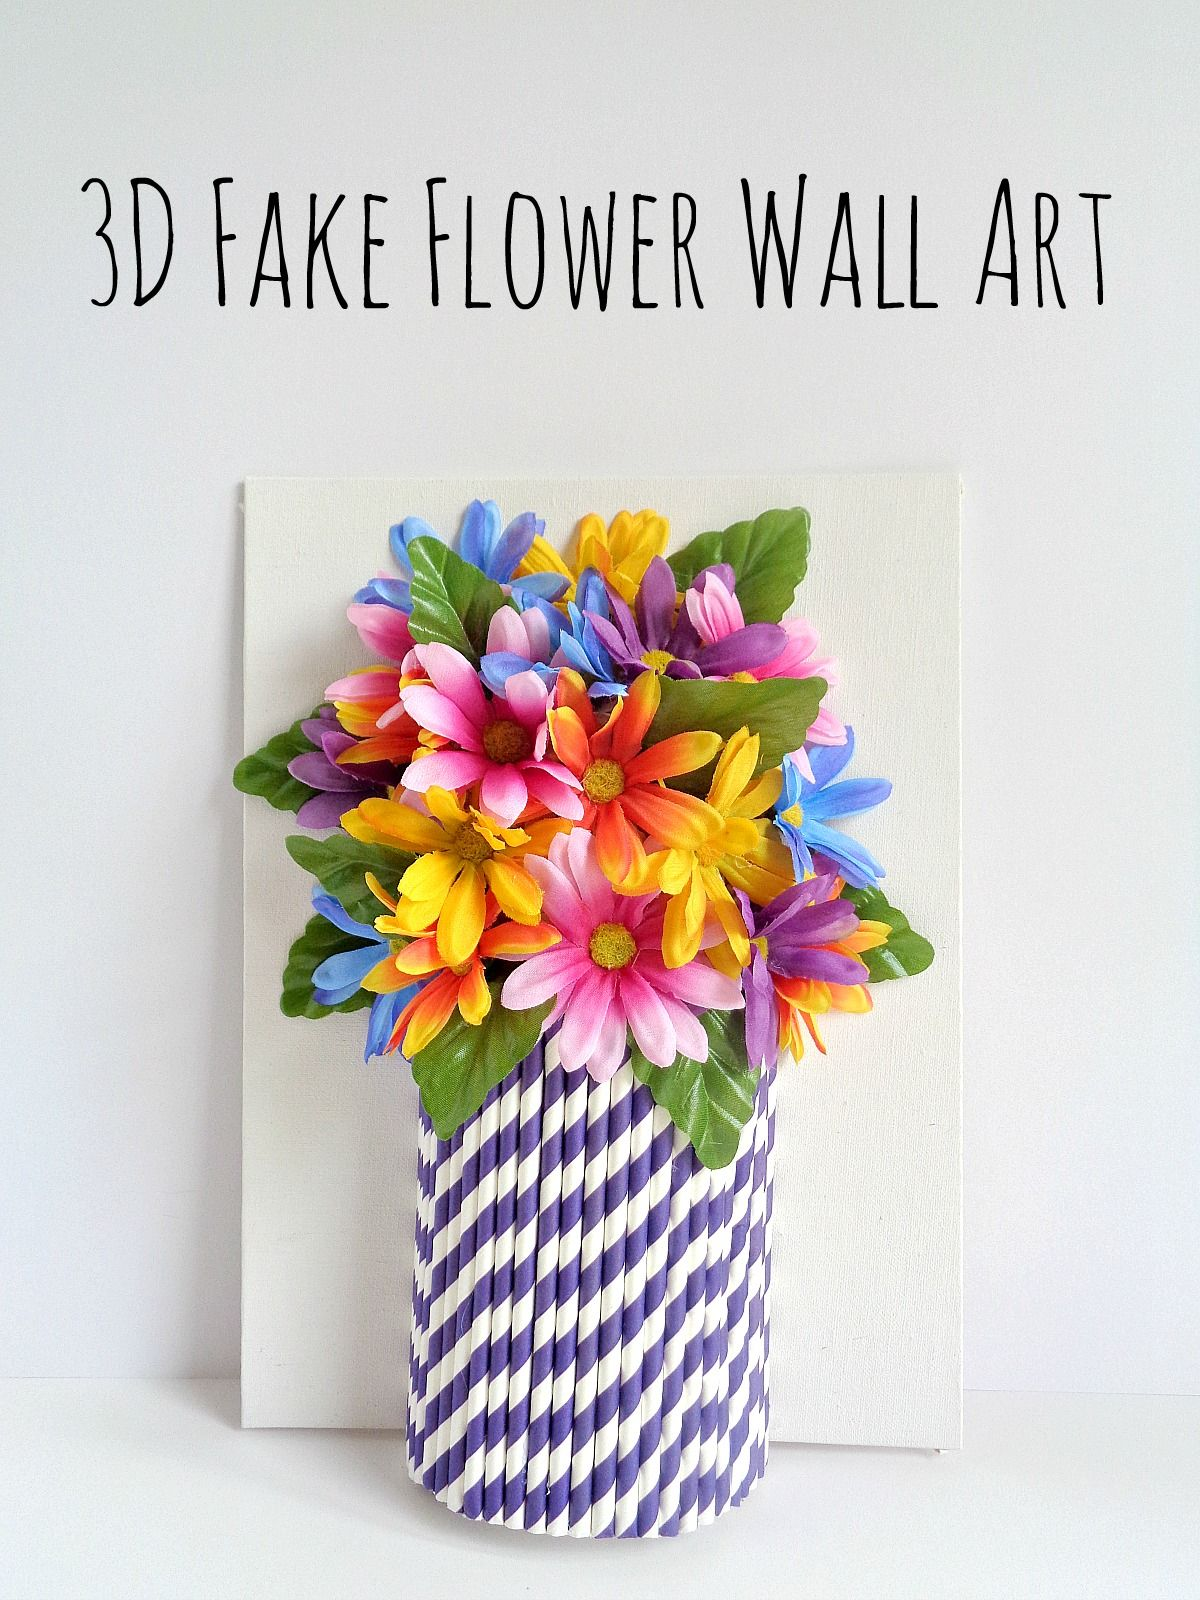 Marvelous ... 3D Fake Flower Wall Art! View In Gallery